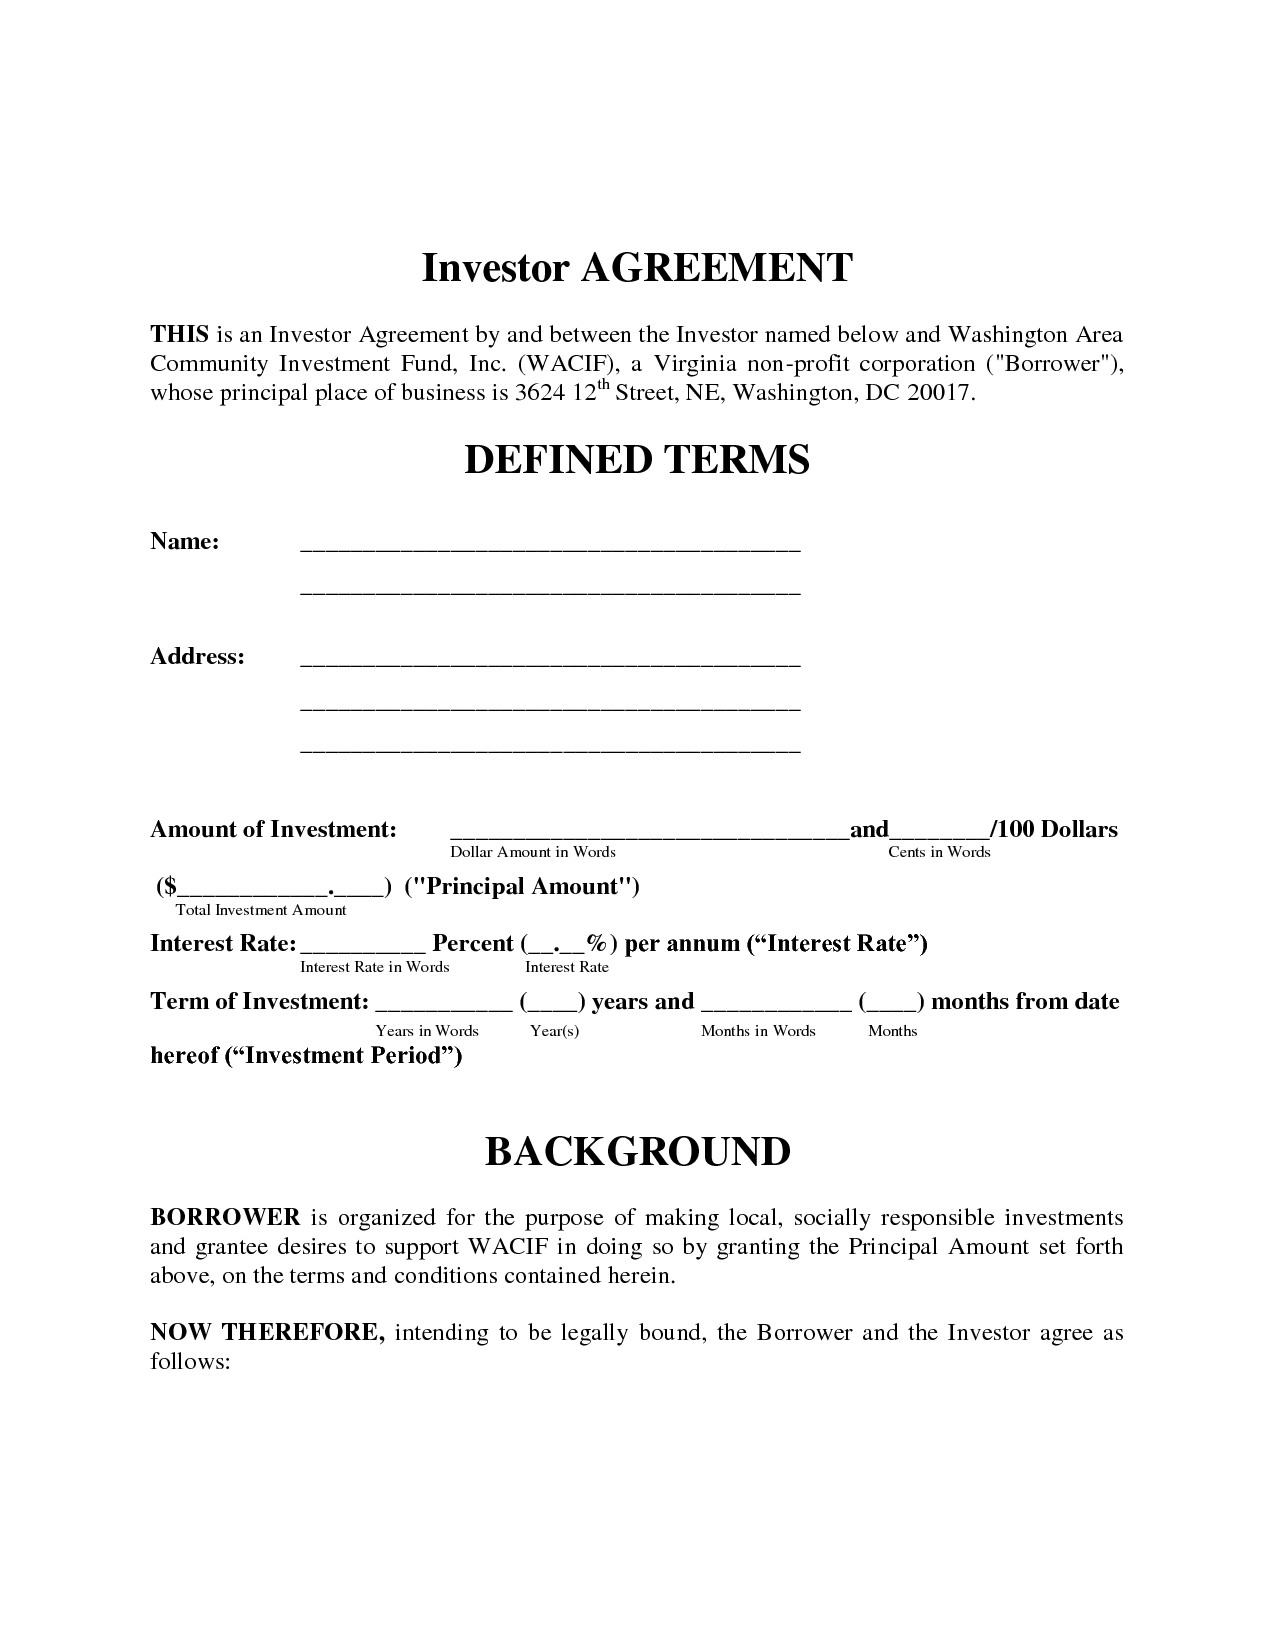 Investment Agreement Investment Contract Template